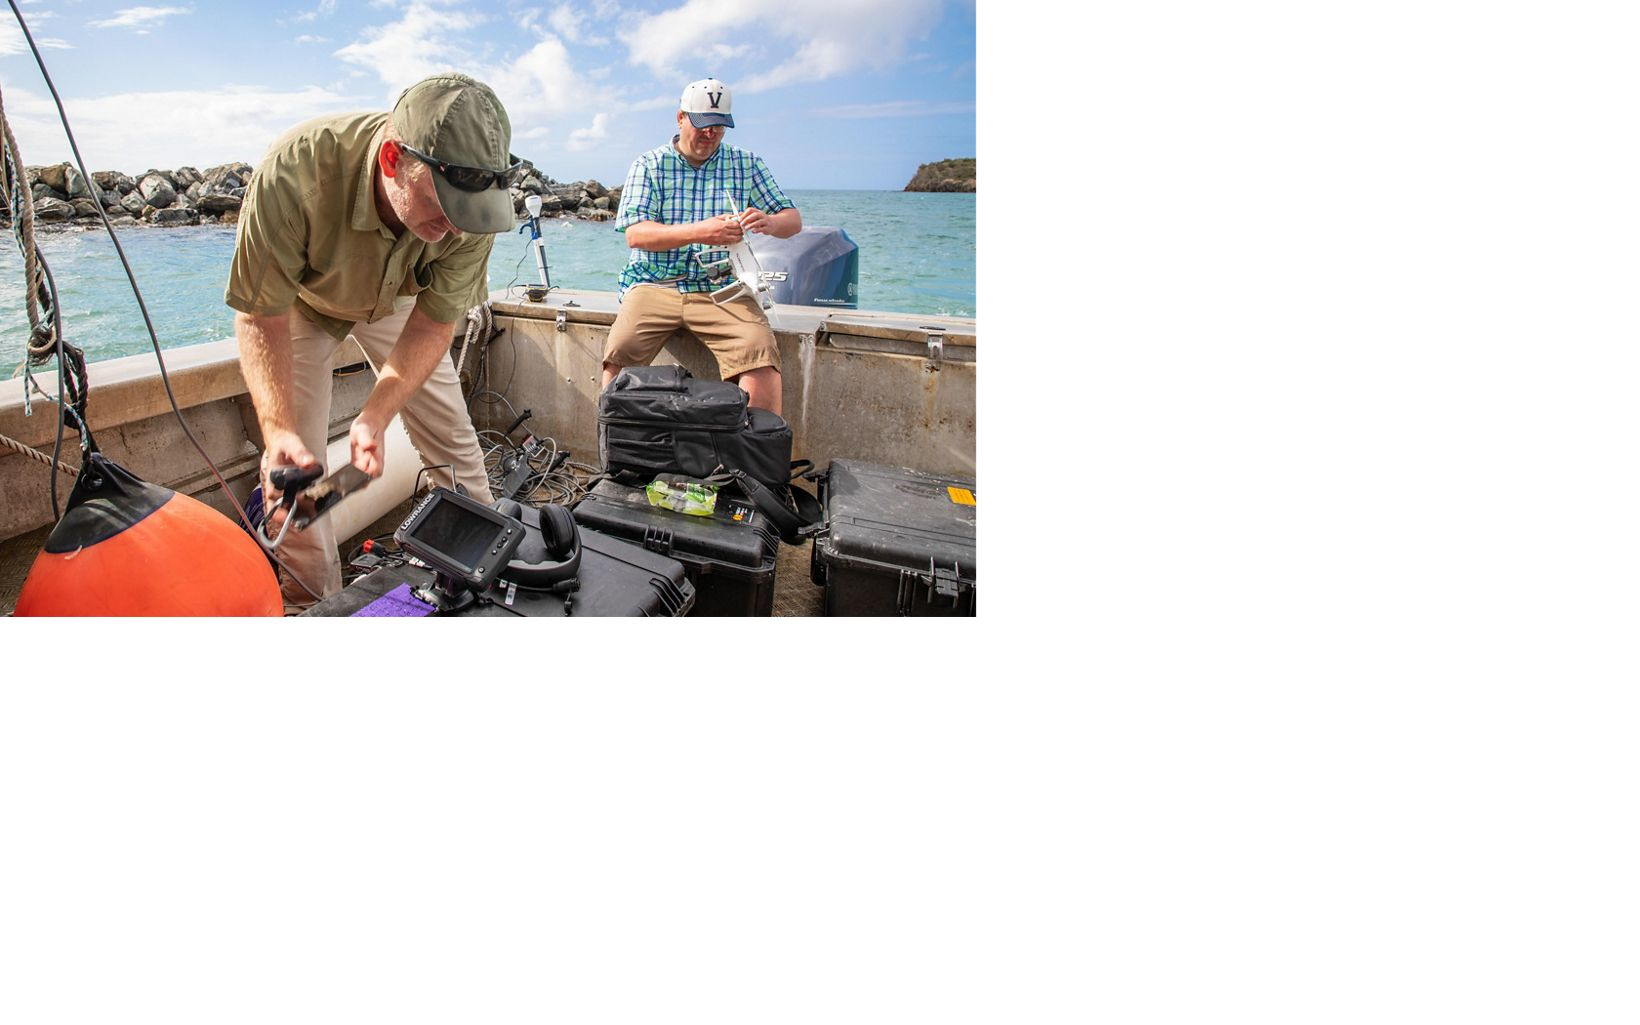 Data being collected by boat in St. Croix using an underwater drone camera adds another layer of information to create extremely accurate maps.